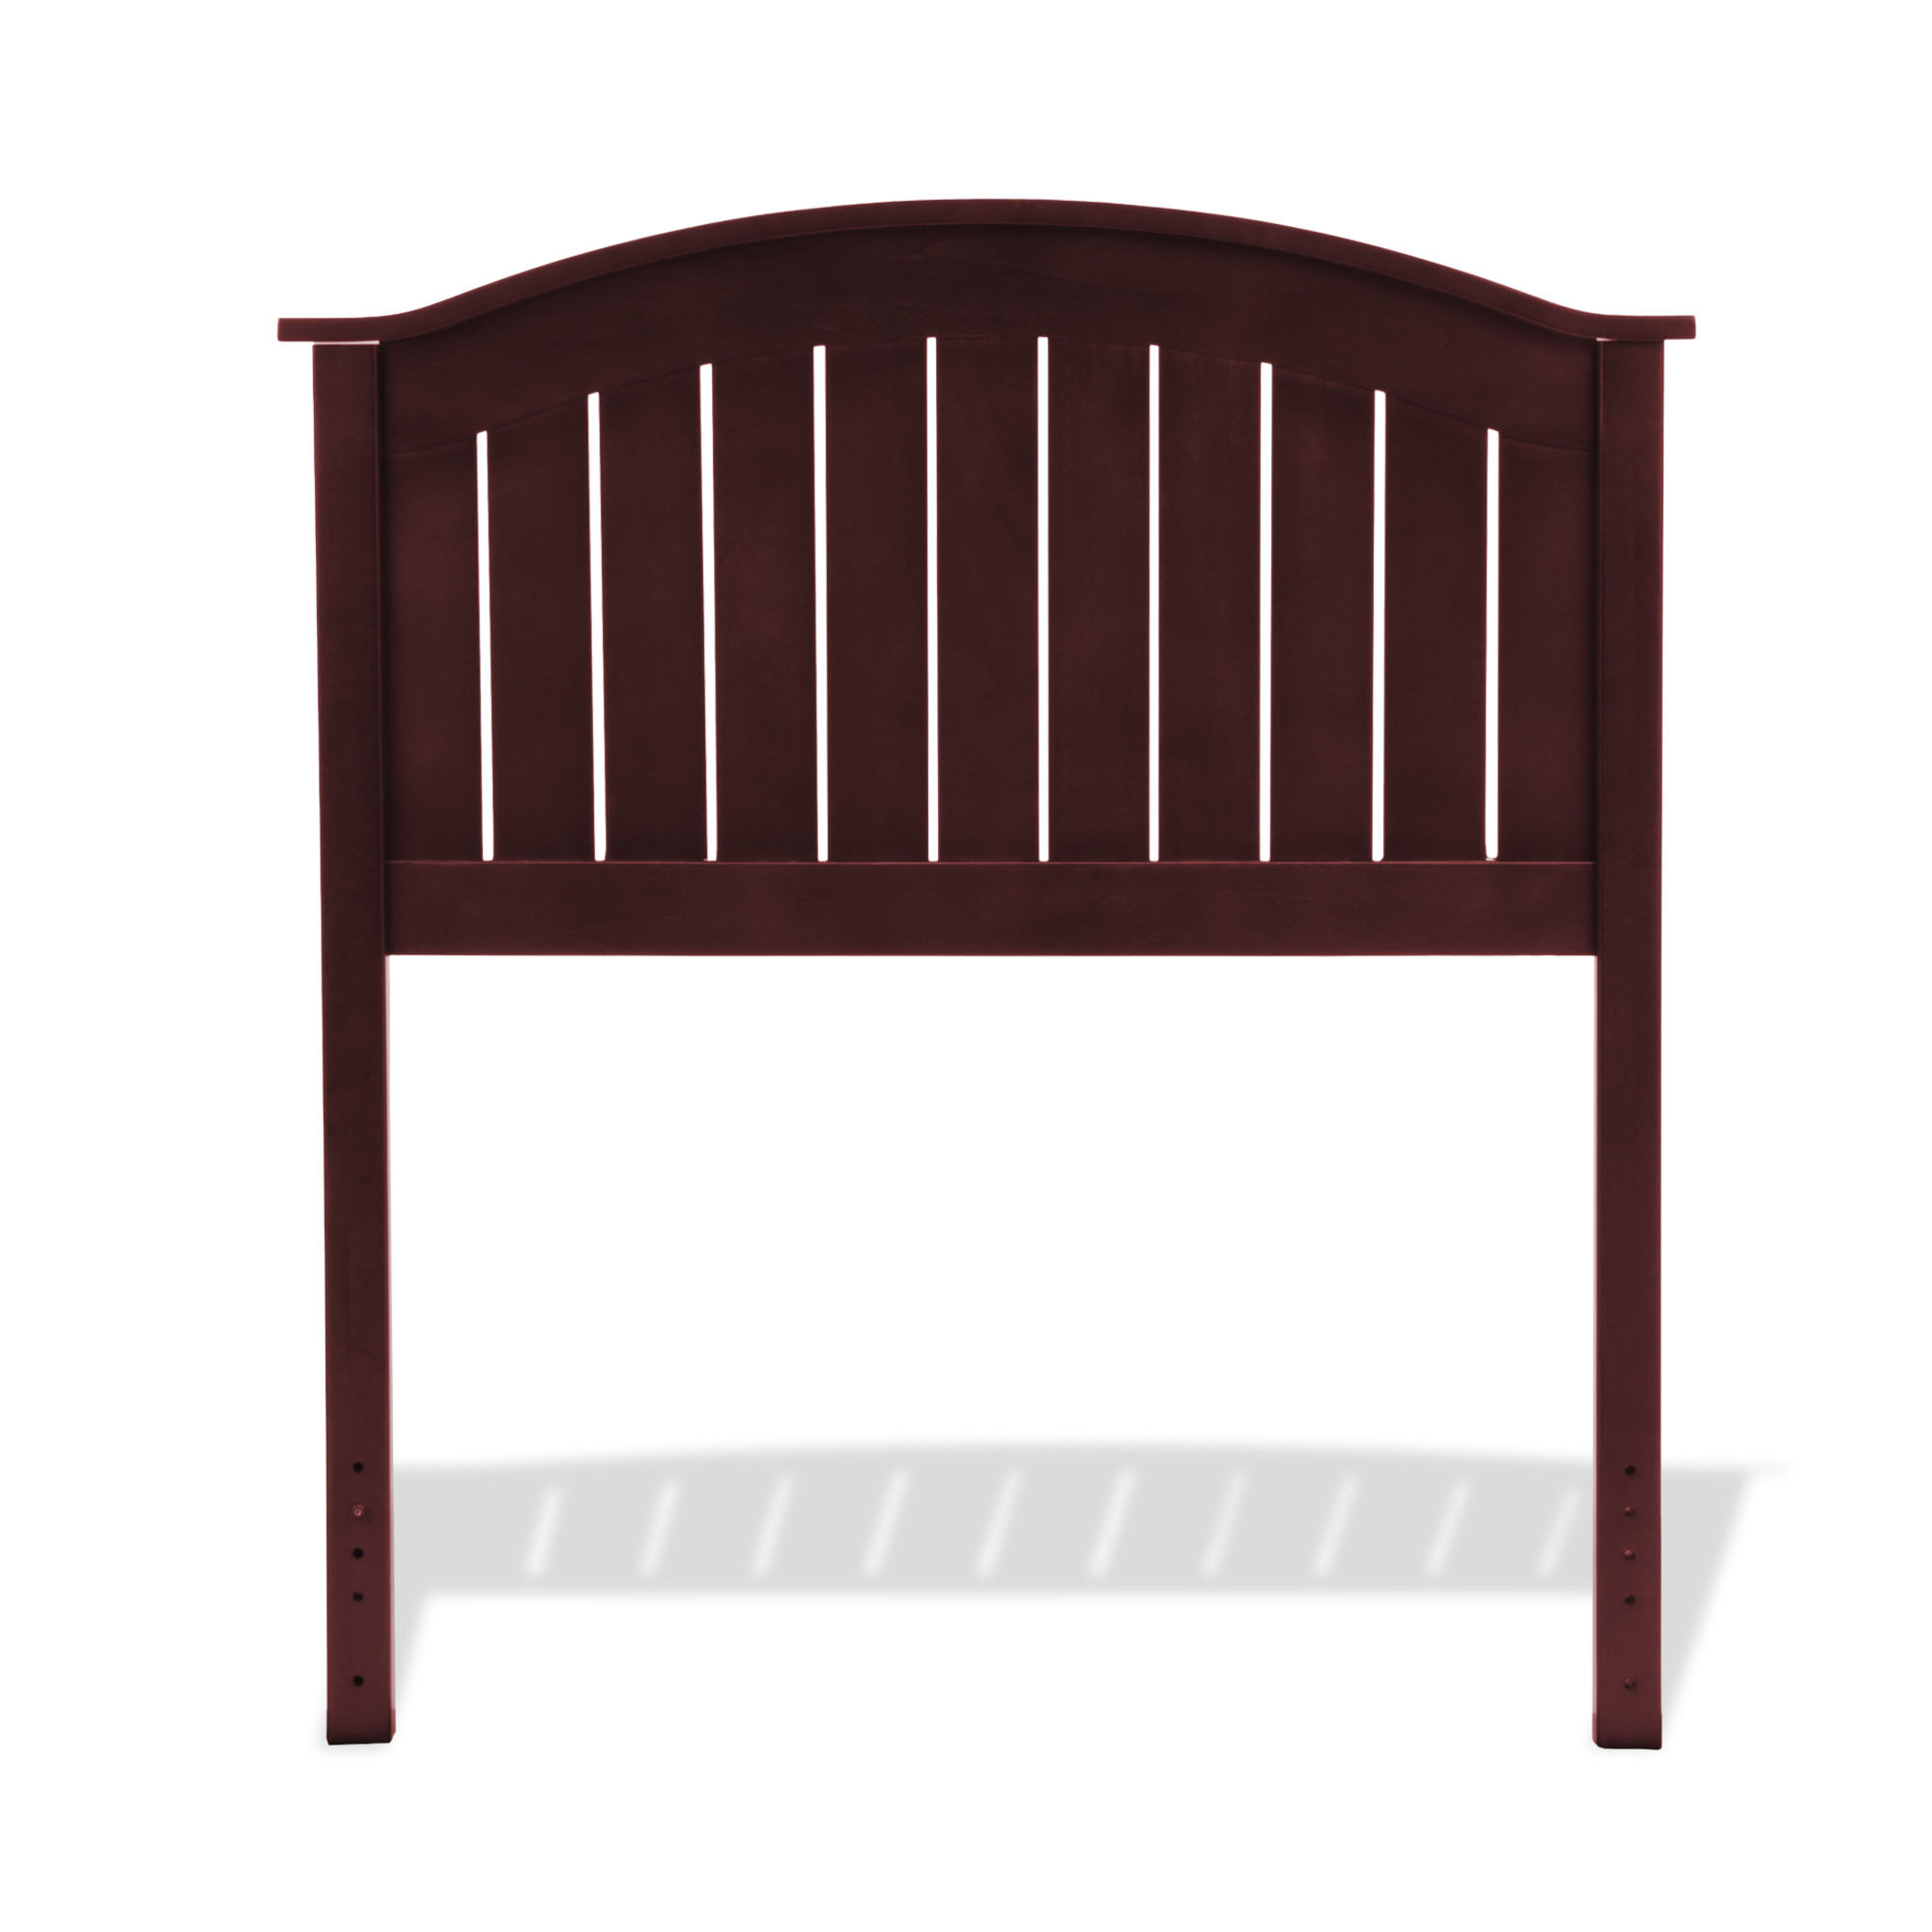 finley wooden headboard panel with curved top rail design, merlot, Headboard designs